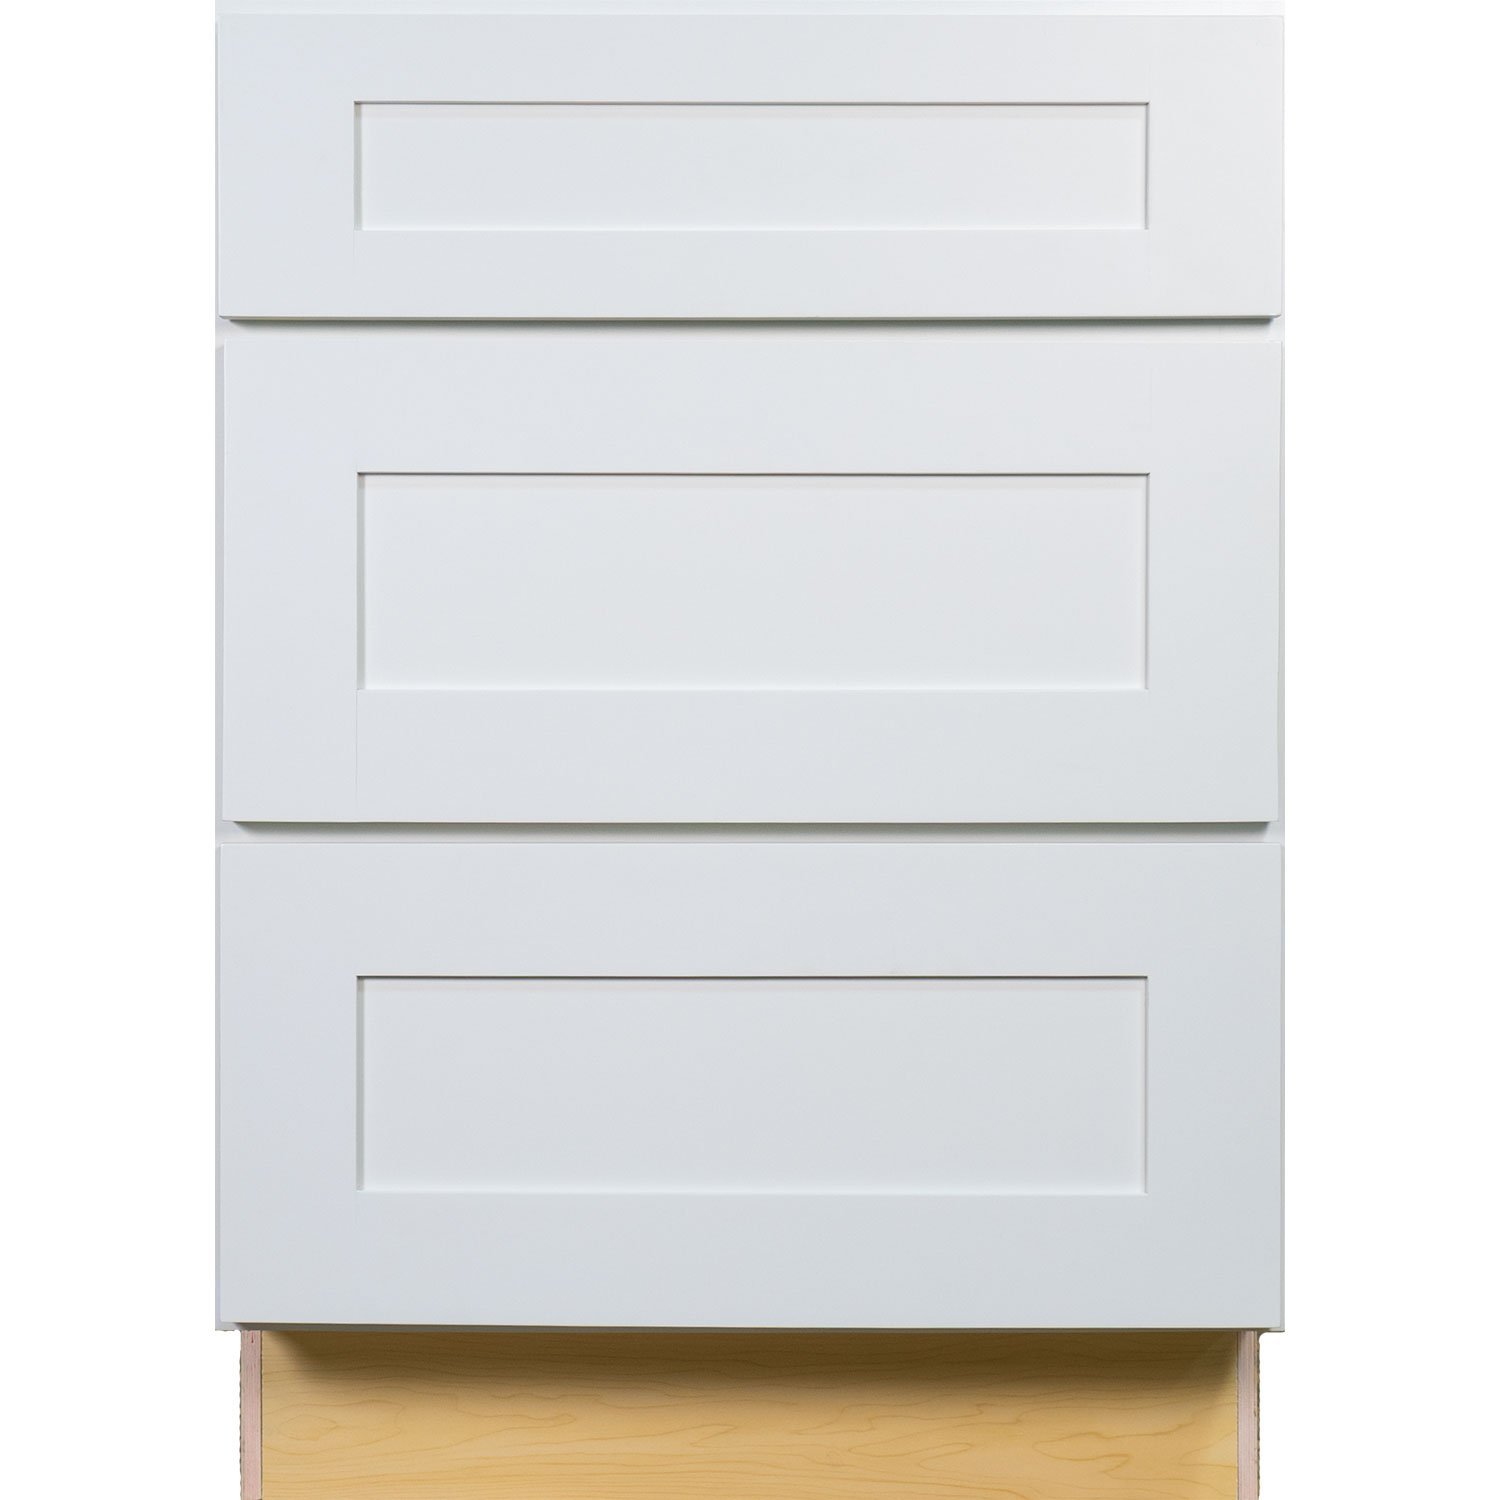 Everyday Cabinets 24 Inch Bathroom Vanity Drawer Base Cabinet In Shaker White With Soft Close Drawers 24 Amazon Com